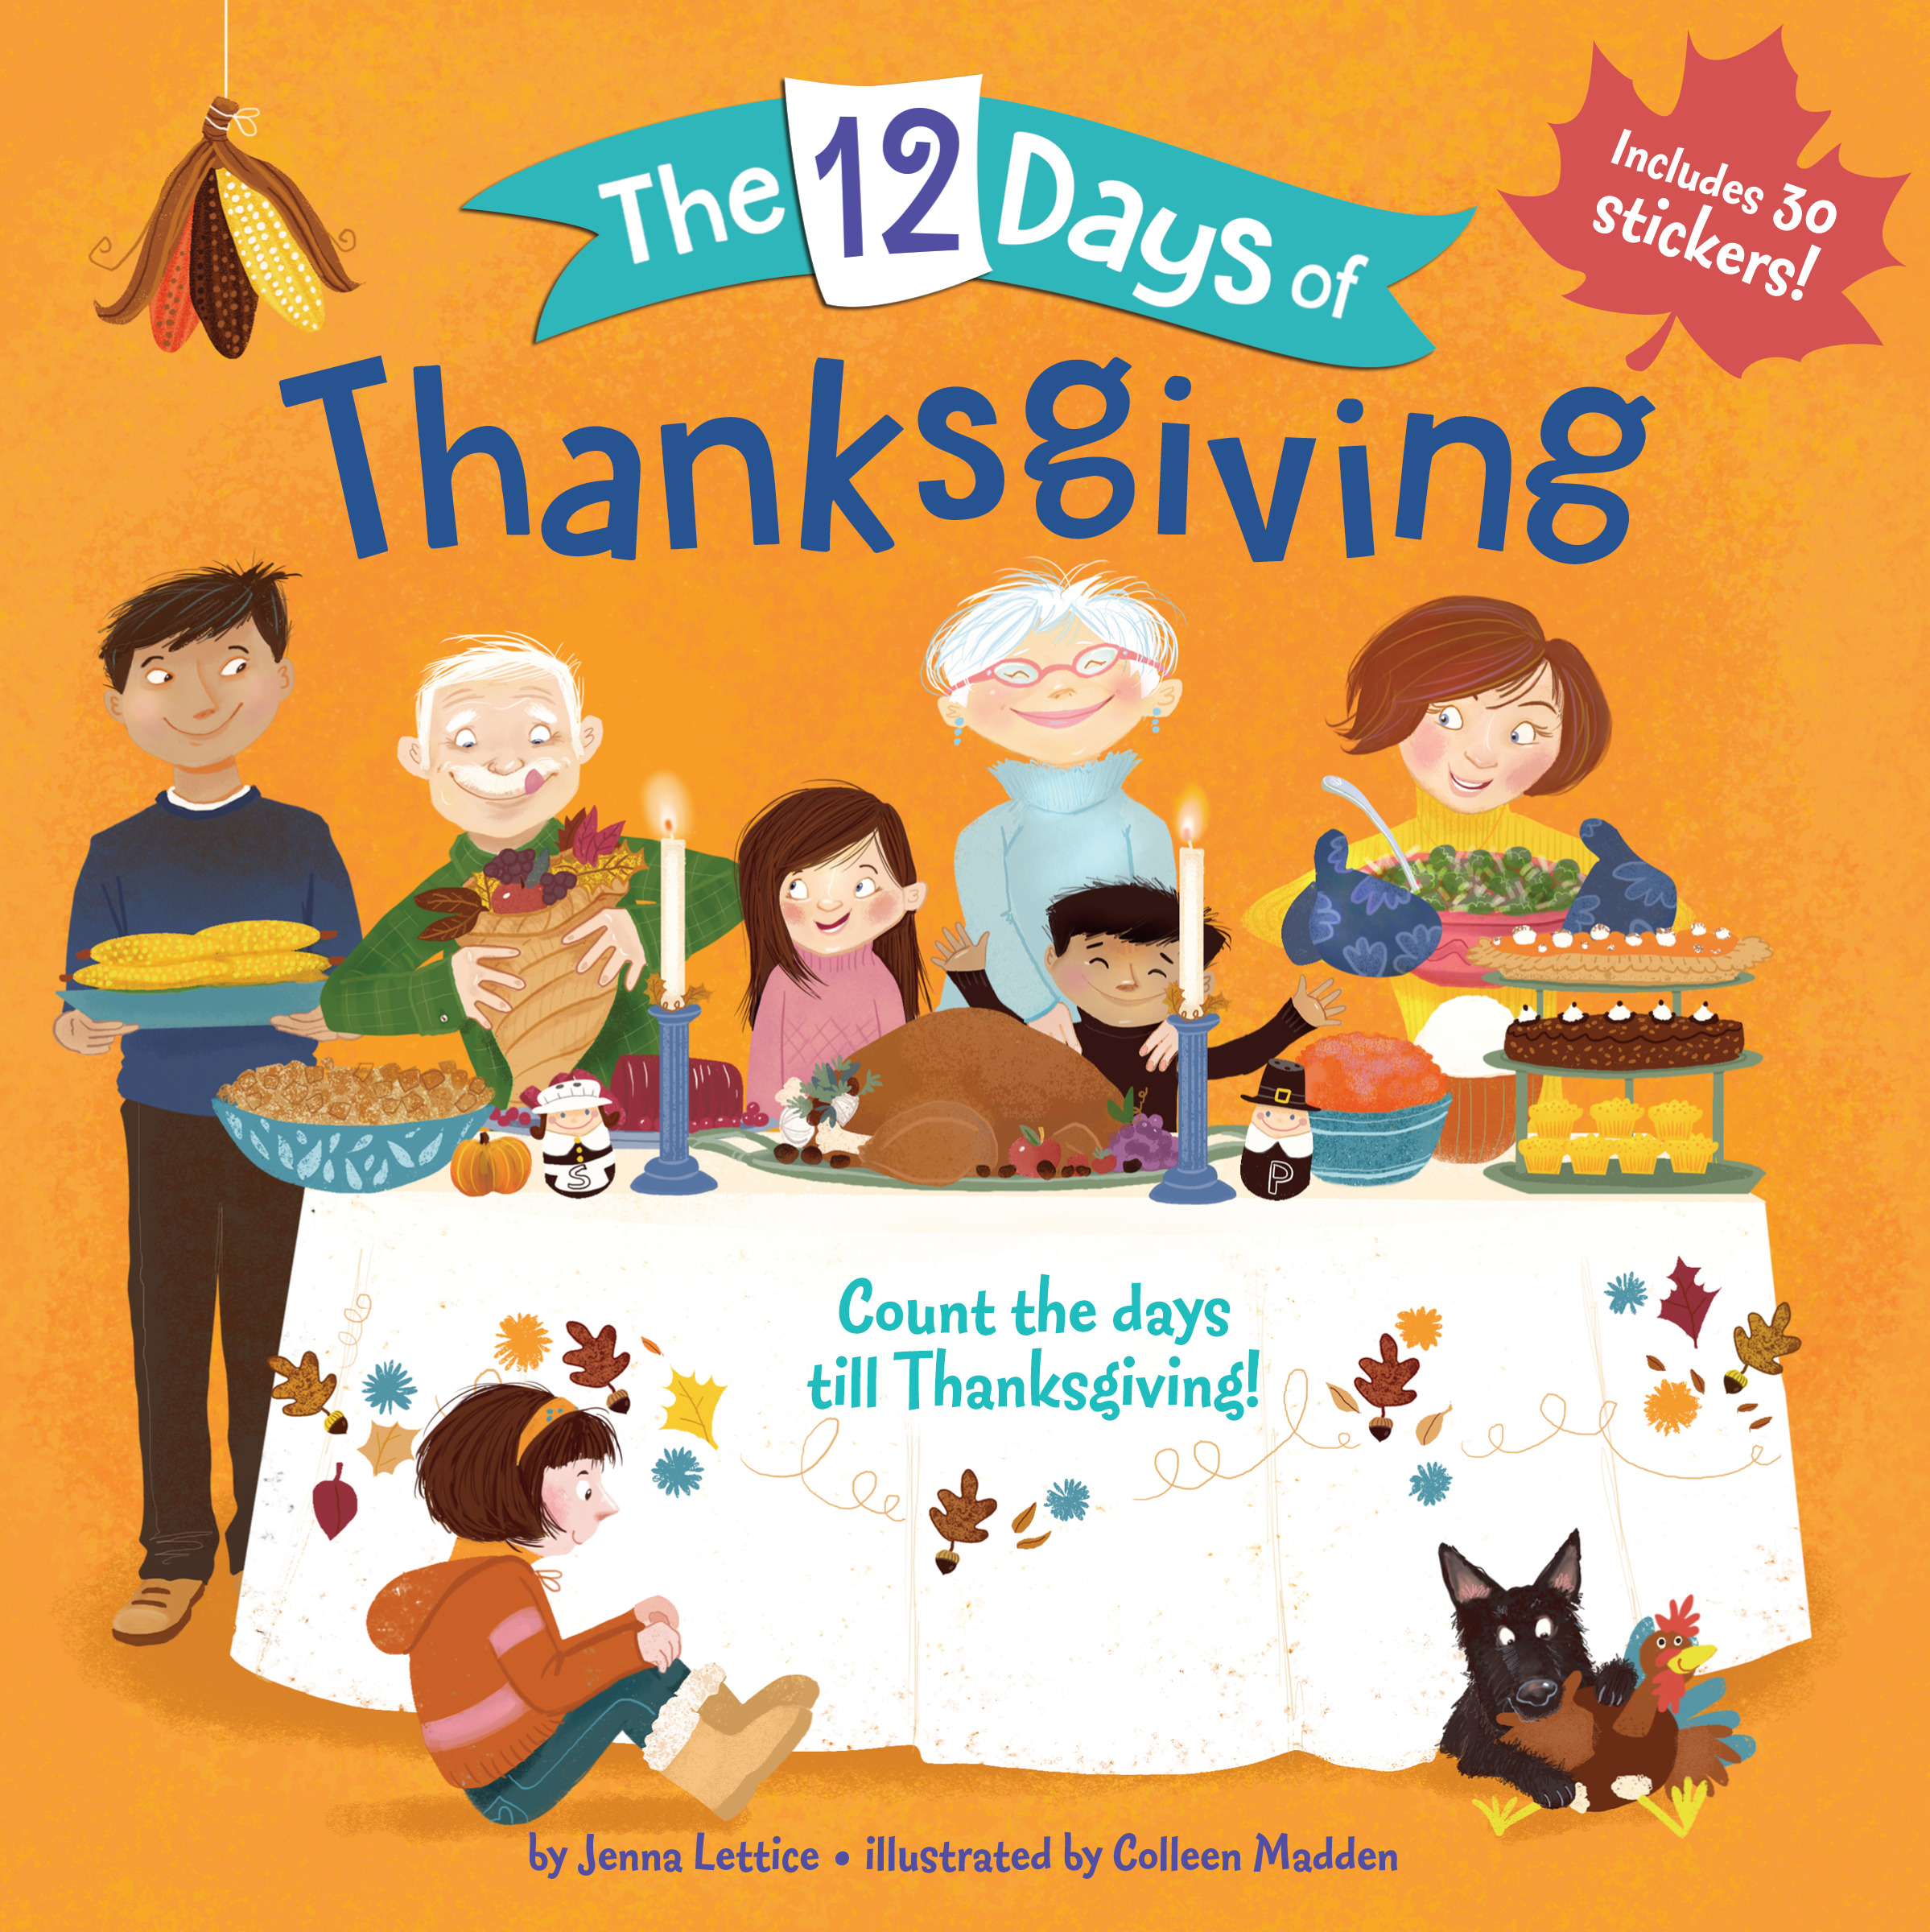 Sunday Story Time with Jenna Lettice (Author of The 12 Days of Thanksgiving)